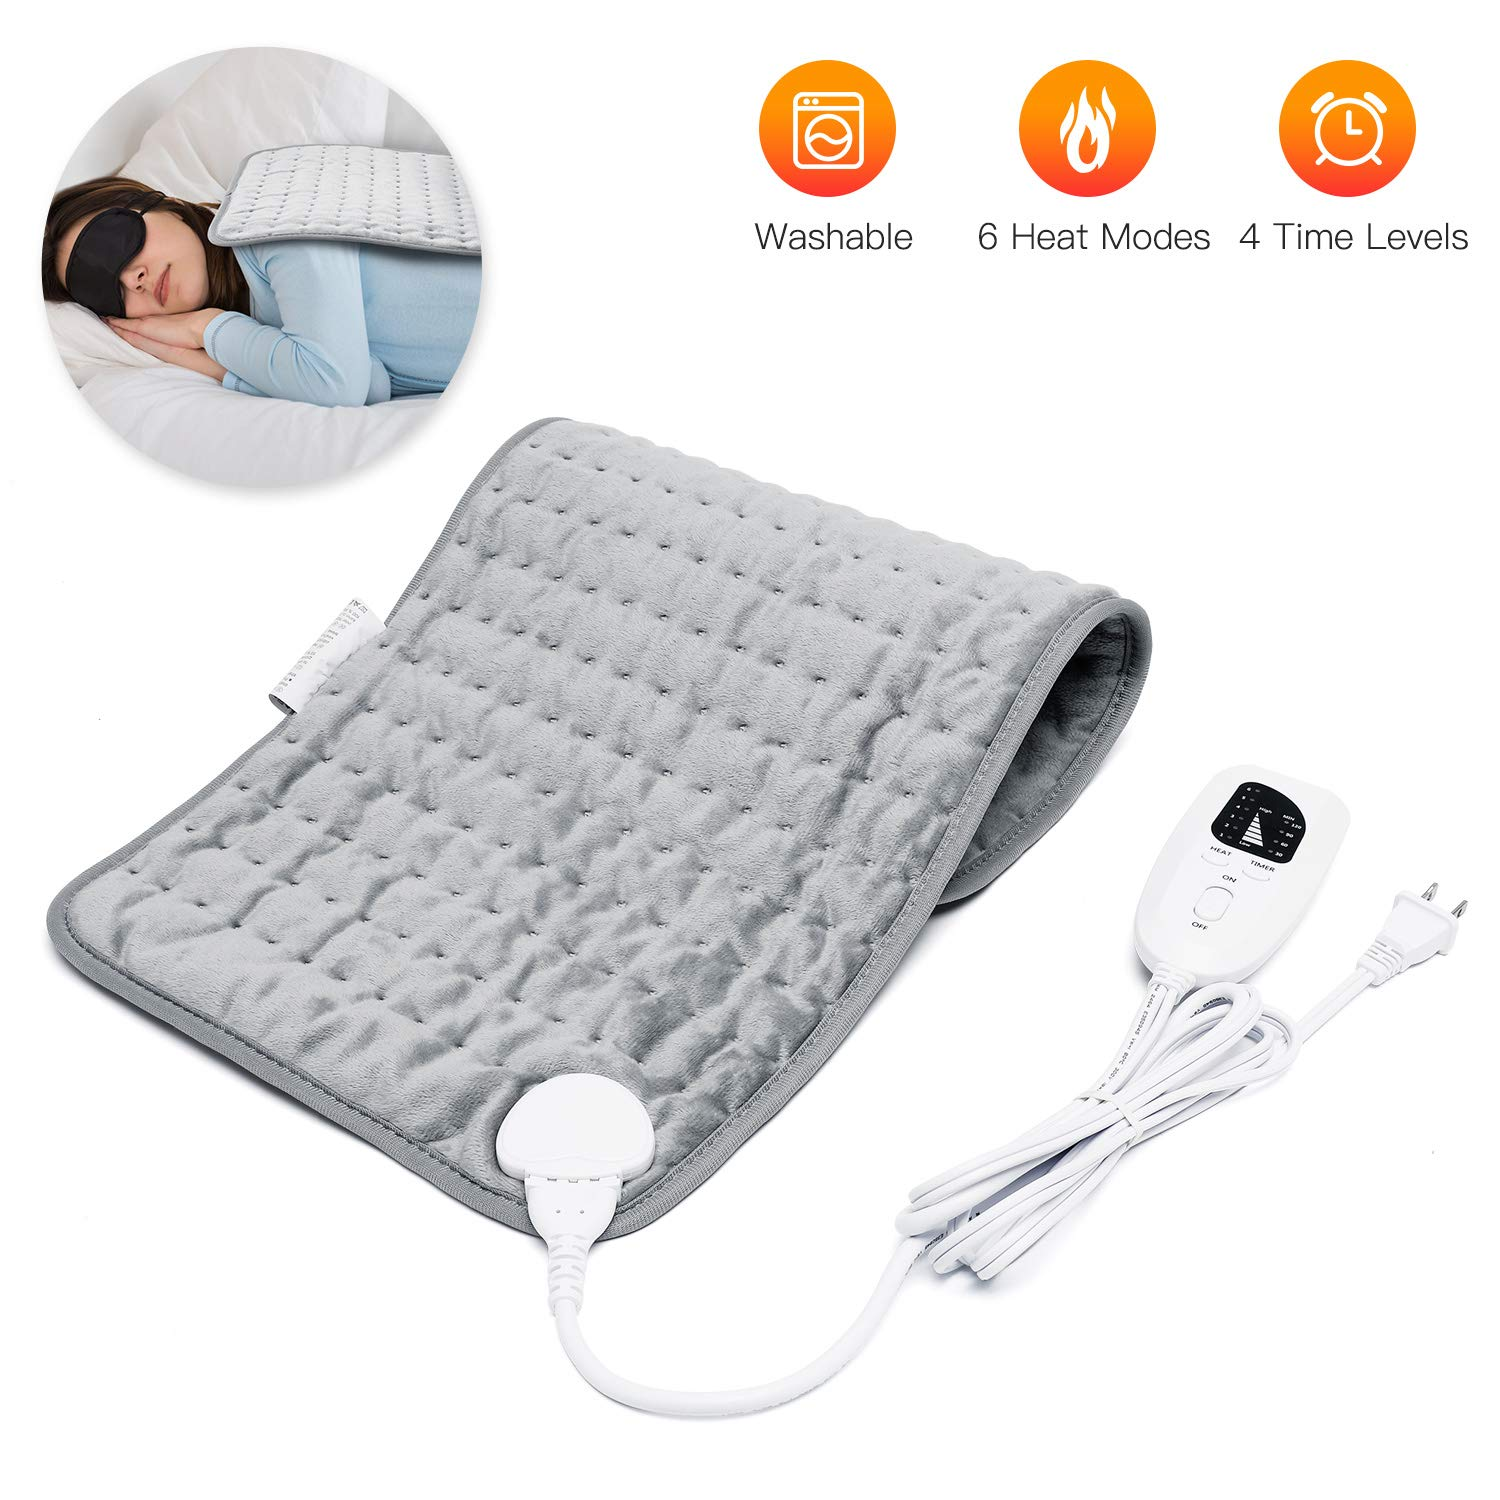 "Heating Pad 12""x24"" 6 Temperature Settings Merkmak Electric Heating Pad for Back, Neck, Shoulders, Abdomen, Arm, Legs Machine Washable"